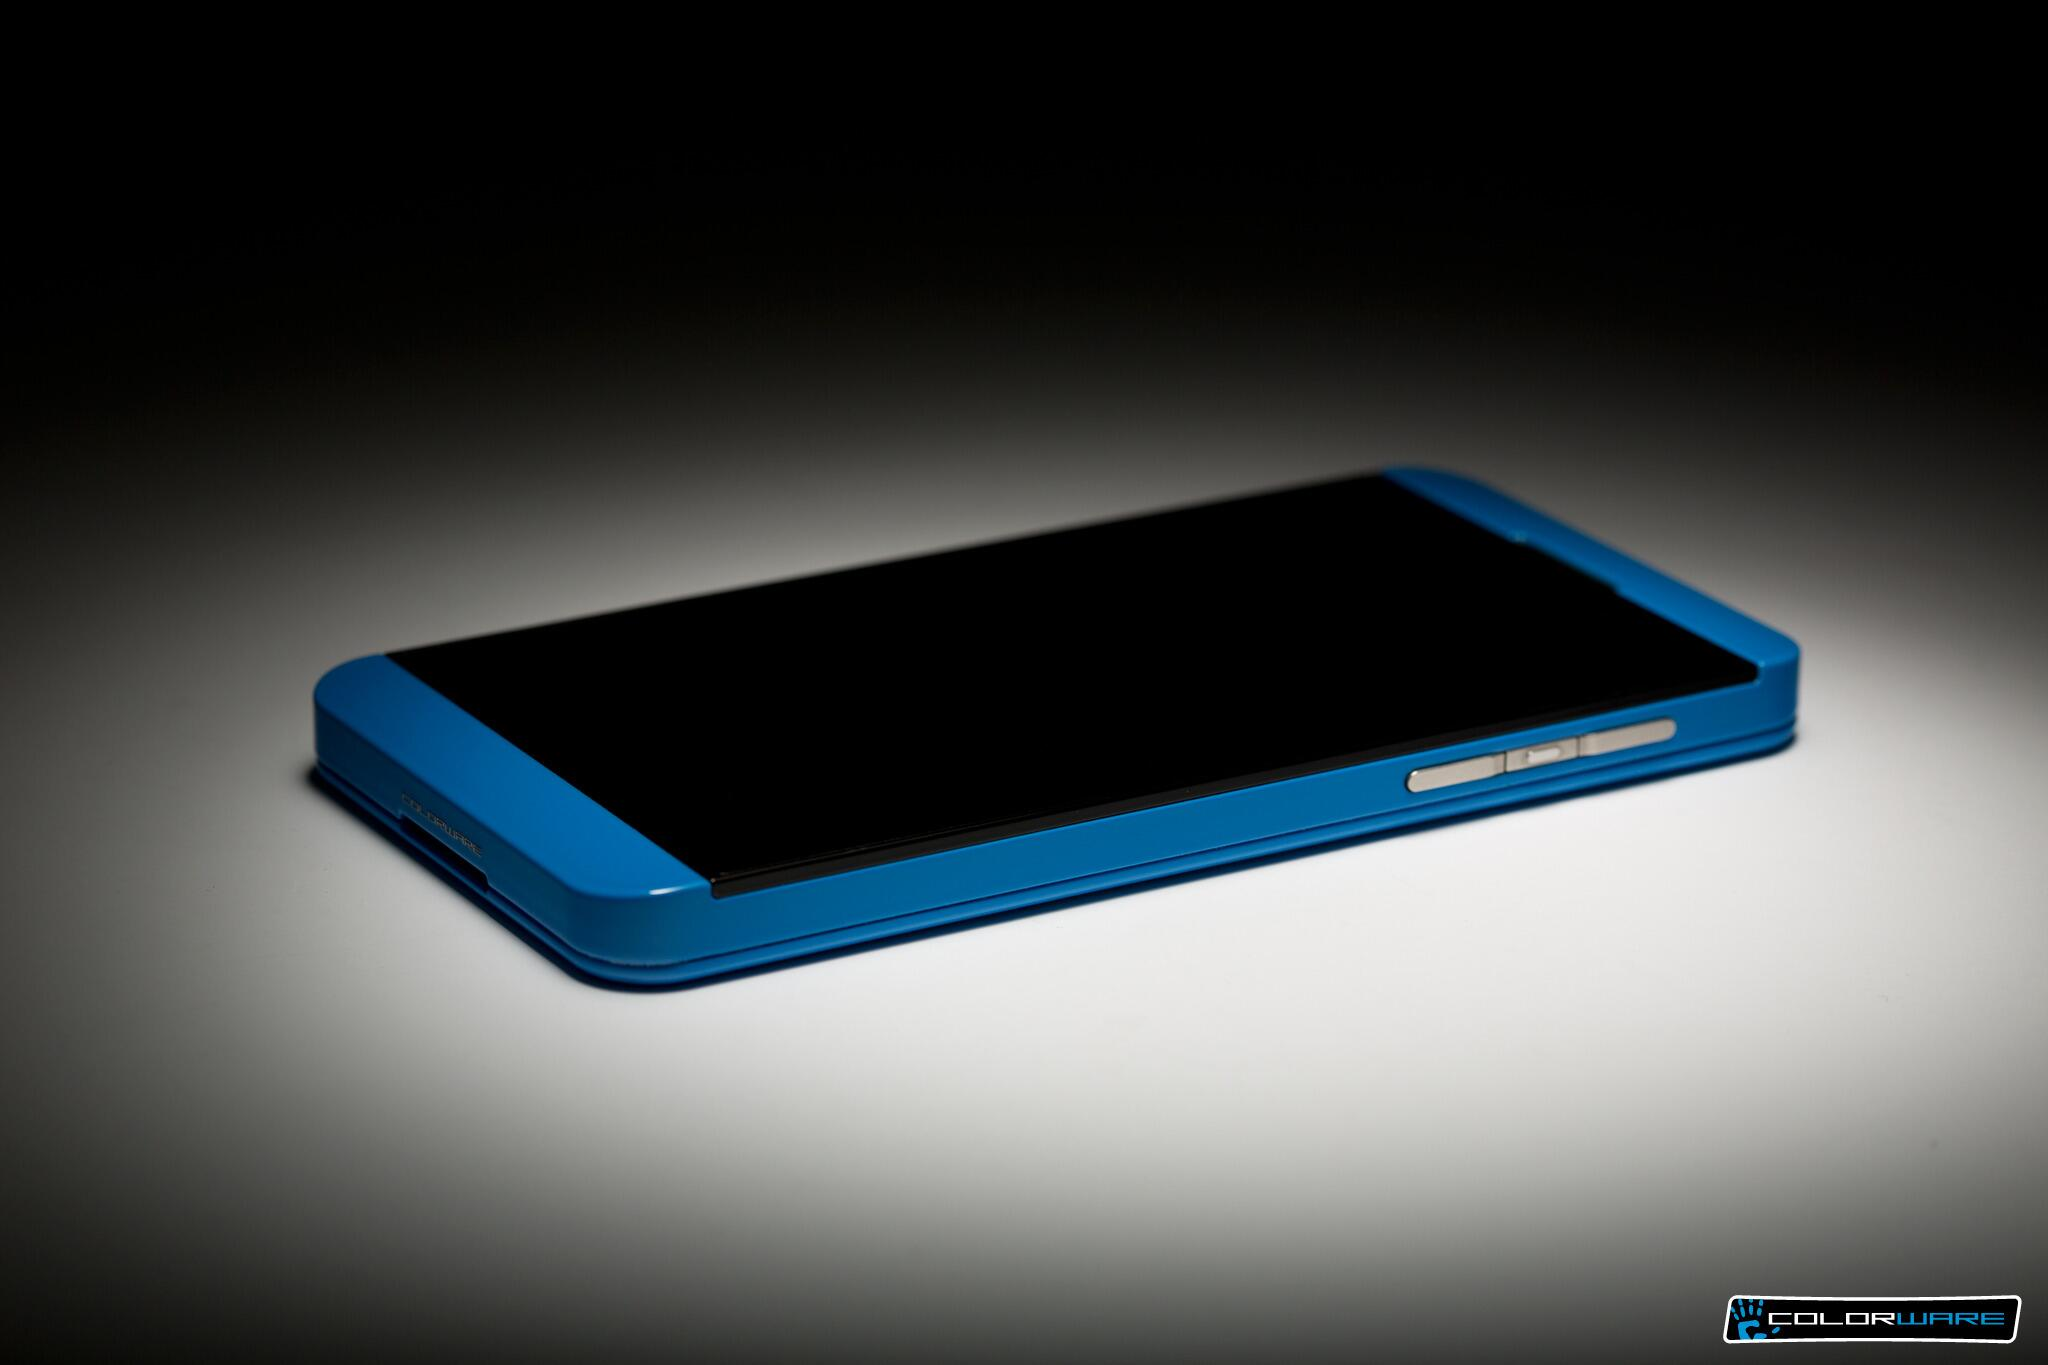 Customers are still loving their #colorware #custom @BlackBerry devices! Are you still a BB user? http://t.co/LSCiqbmltr